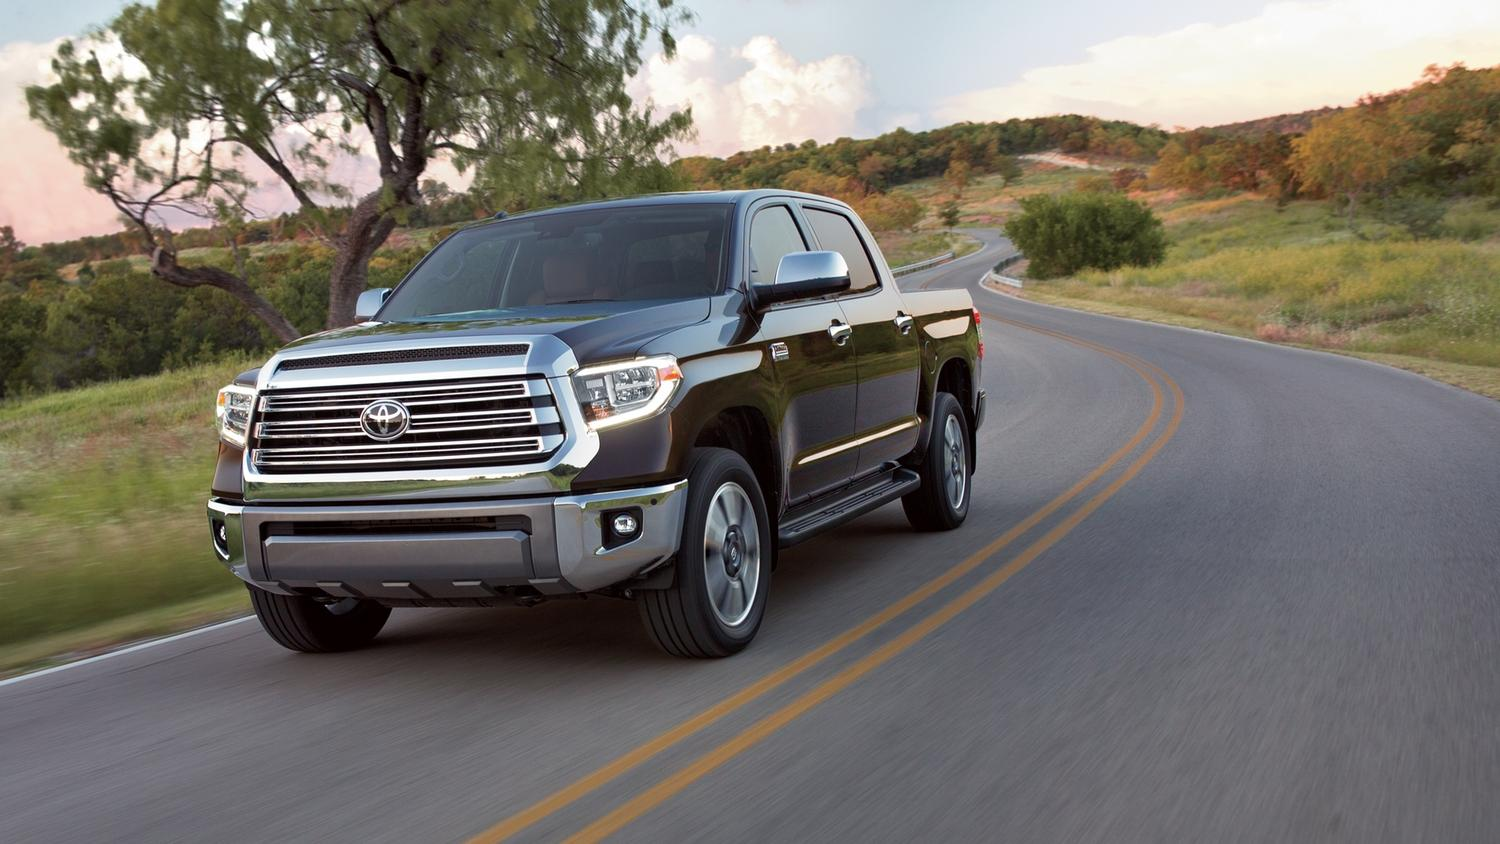 2019 Toyota Tundra for Sale in Ontario